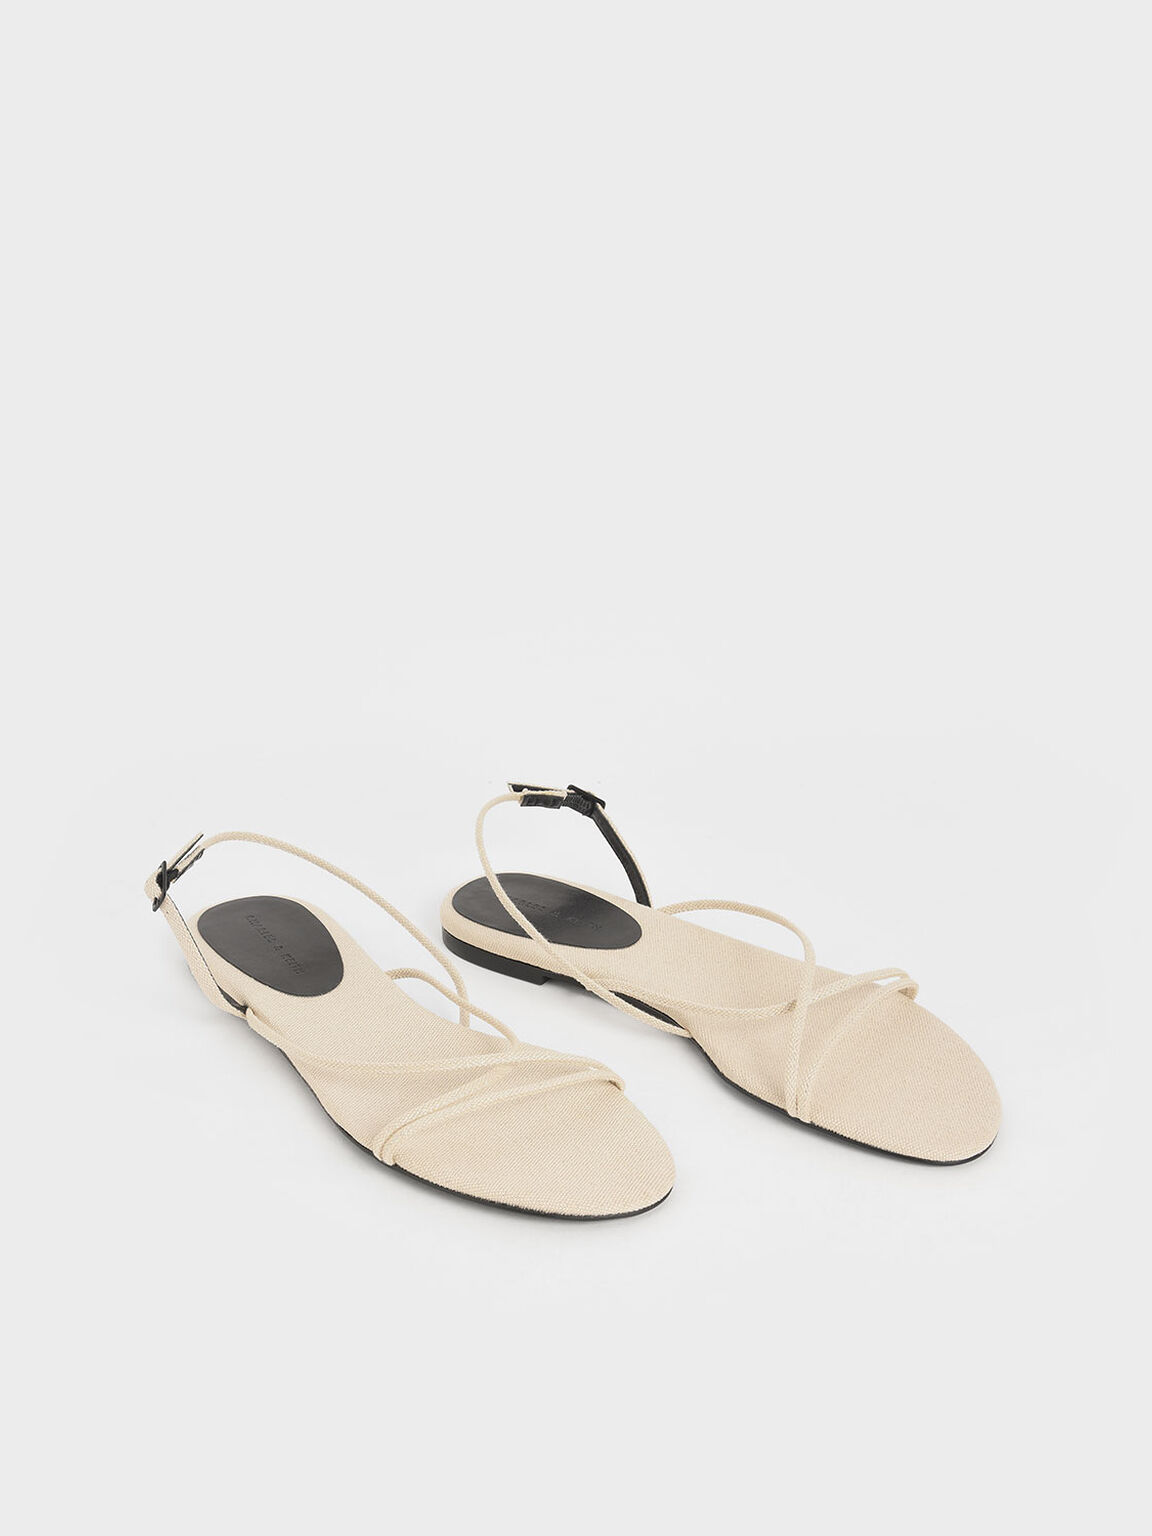 Canvas Strappy Flat Sandals, Beige, hi-res